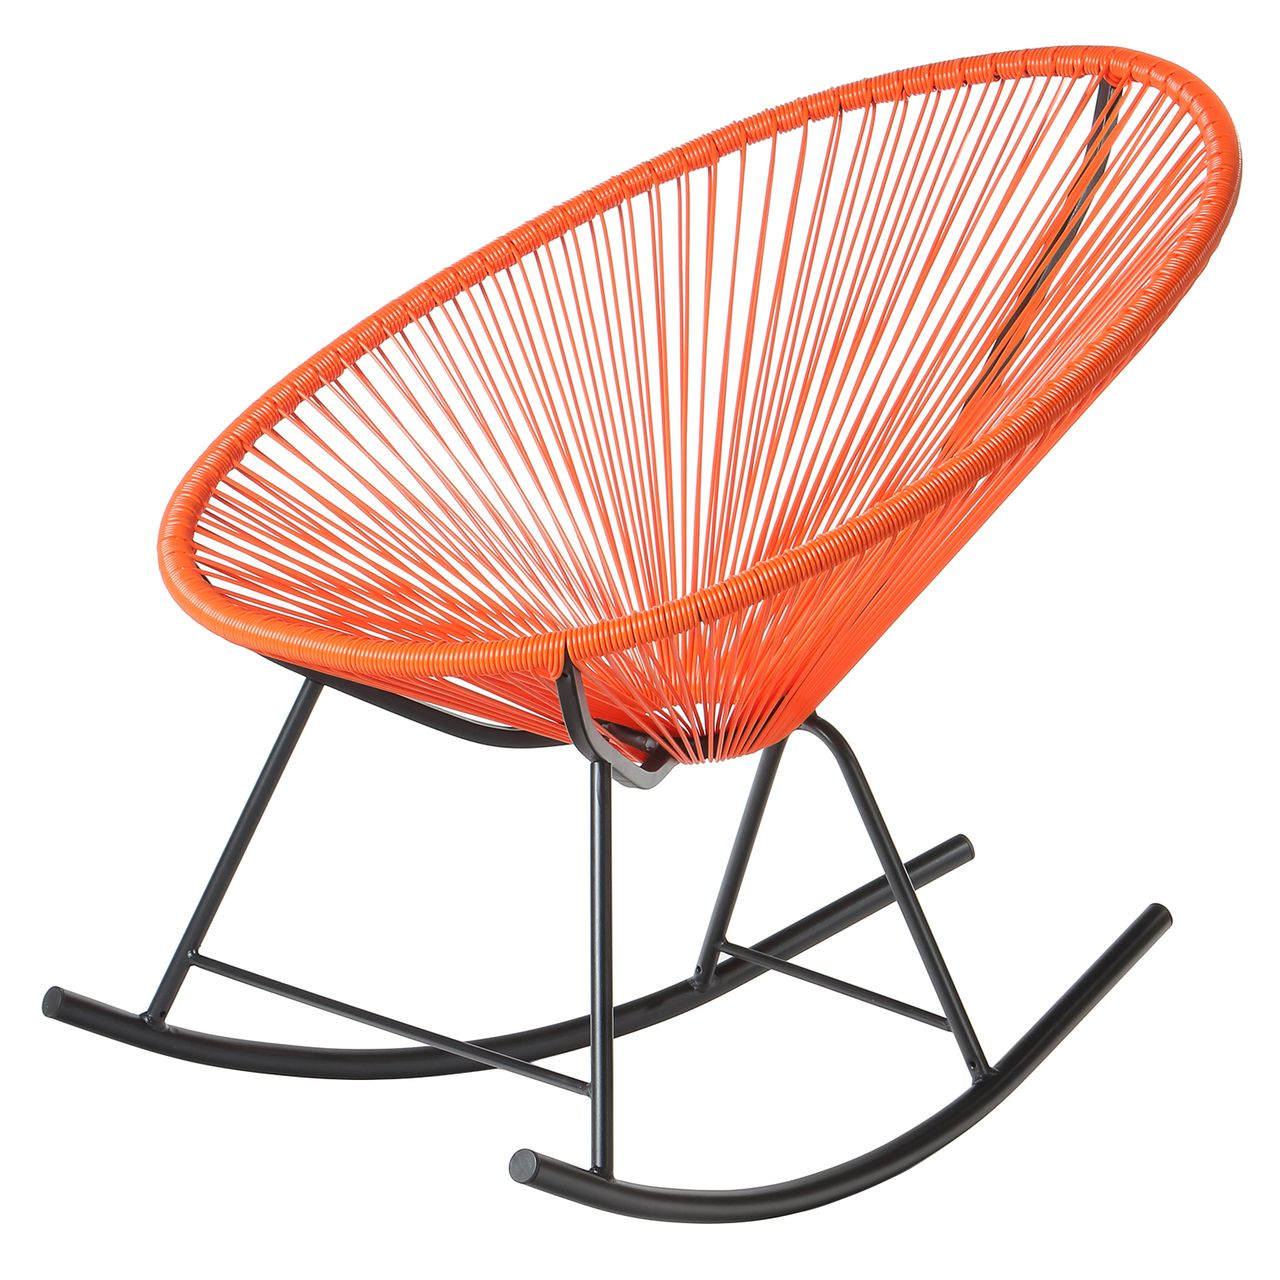 Inspiration about Design Tree Home Acapulco Lounge Chair – Orange | Fun Finds Throughout Orange Rocking Chairs Lounge Chairs (#12 of 20)